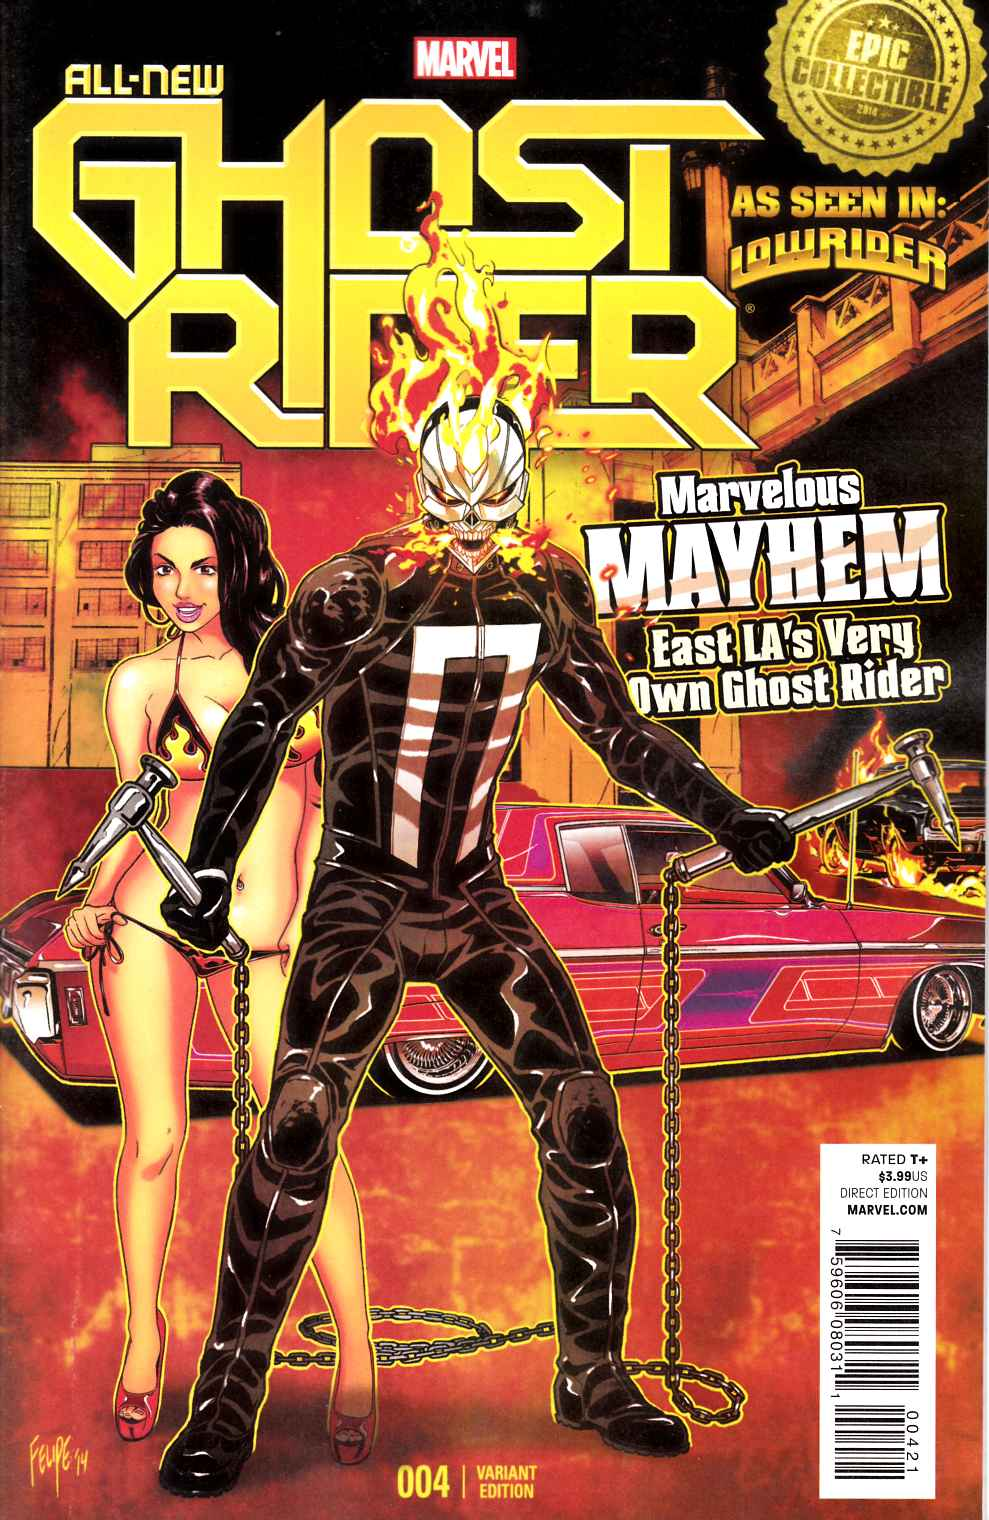 All New Ghost Rider #4 Lowrider Smith Cover Near Mint (9.4) [Marvel Comic]